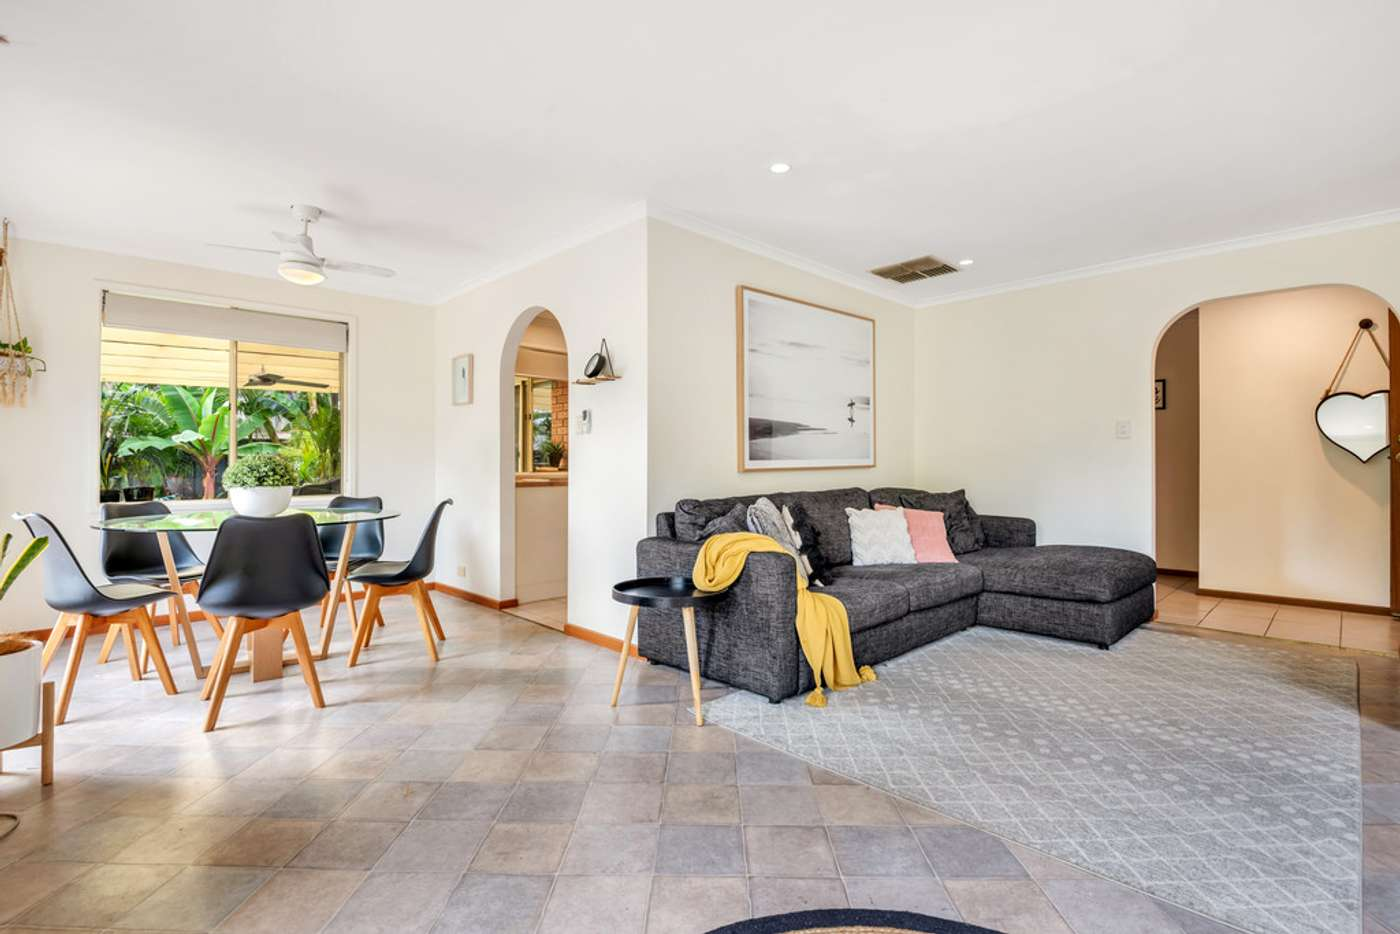 Sixth view of Homely house listing, 1a Morgan Avenue, Seaview Downs SA 5049